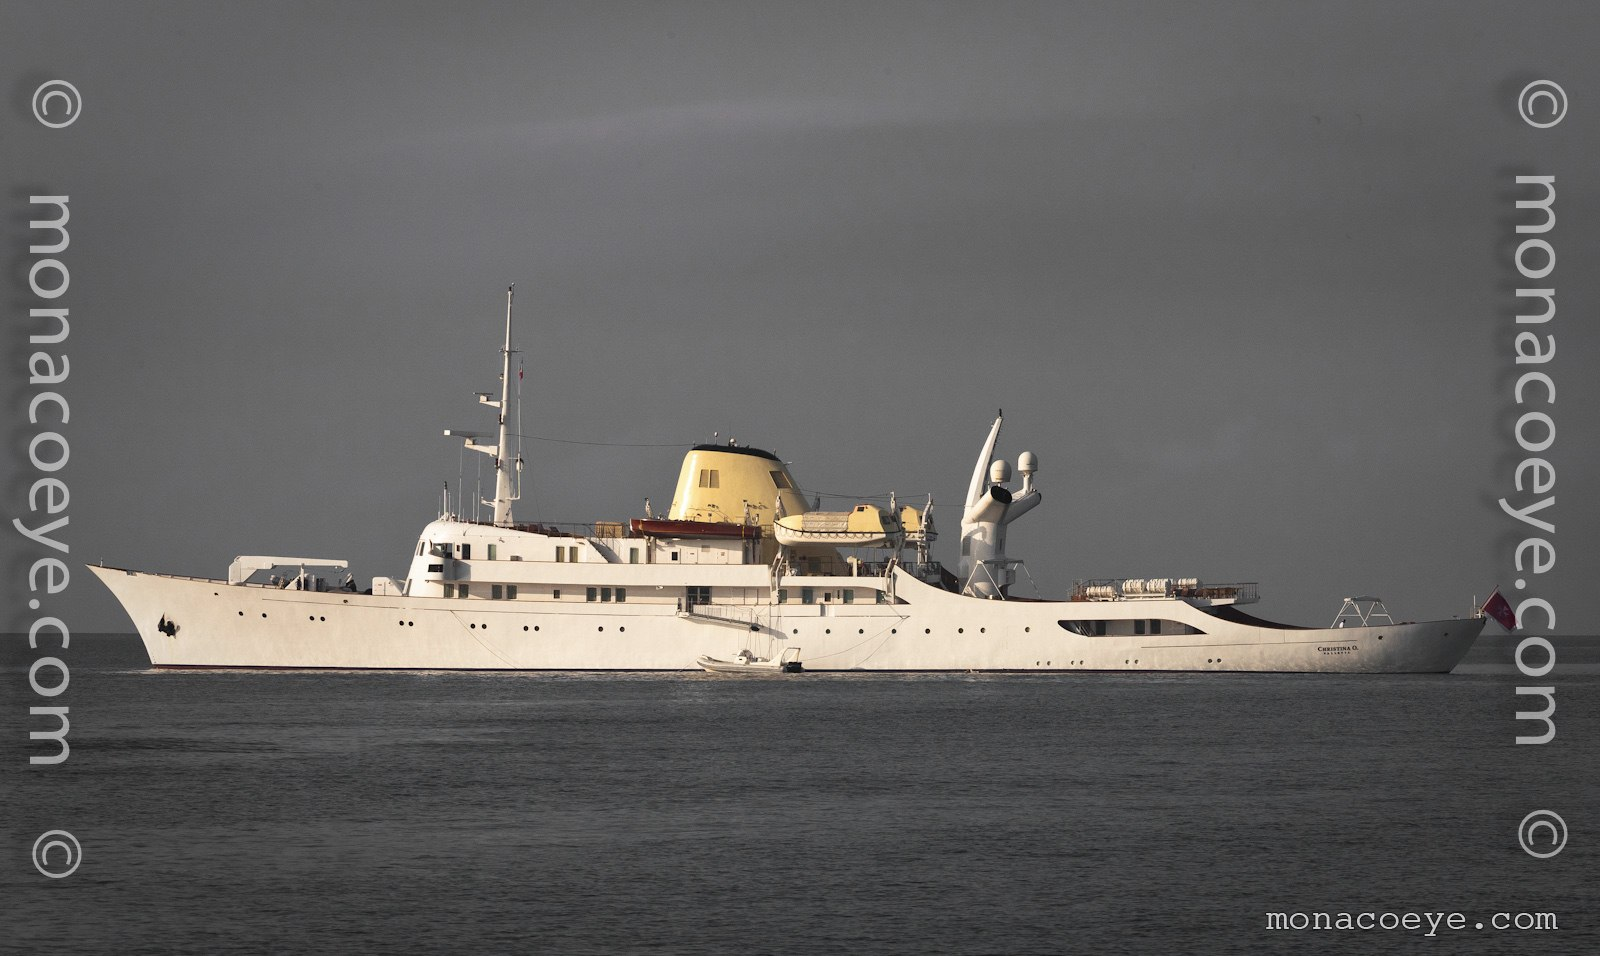 Christina O, 1943 design from Canadian Vickers. The famous yacht of Aristotle Onassis.